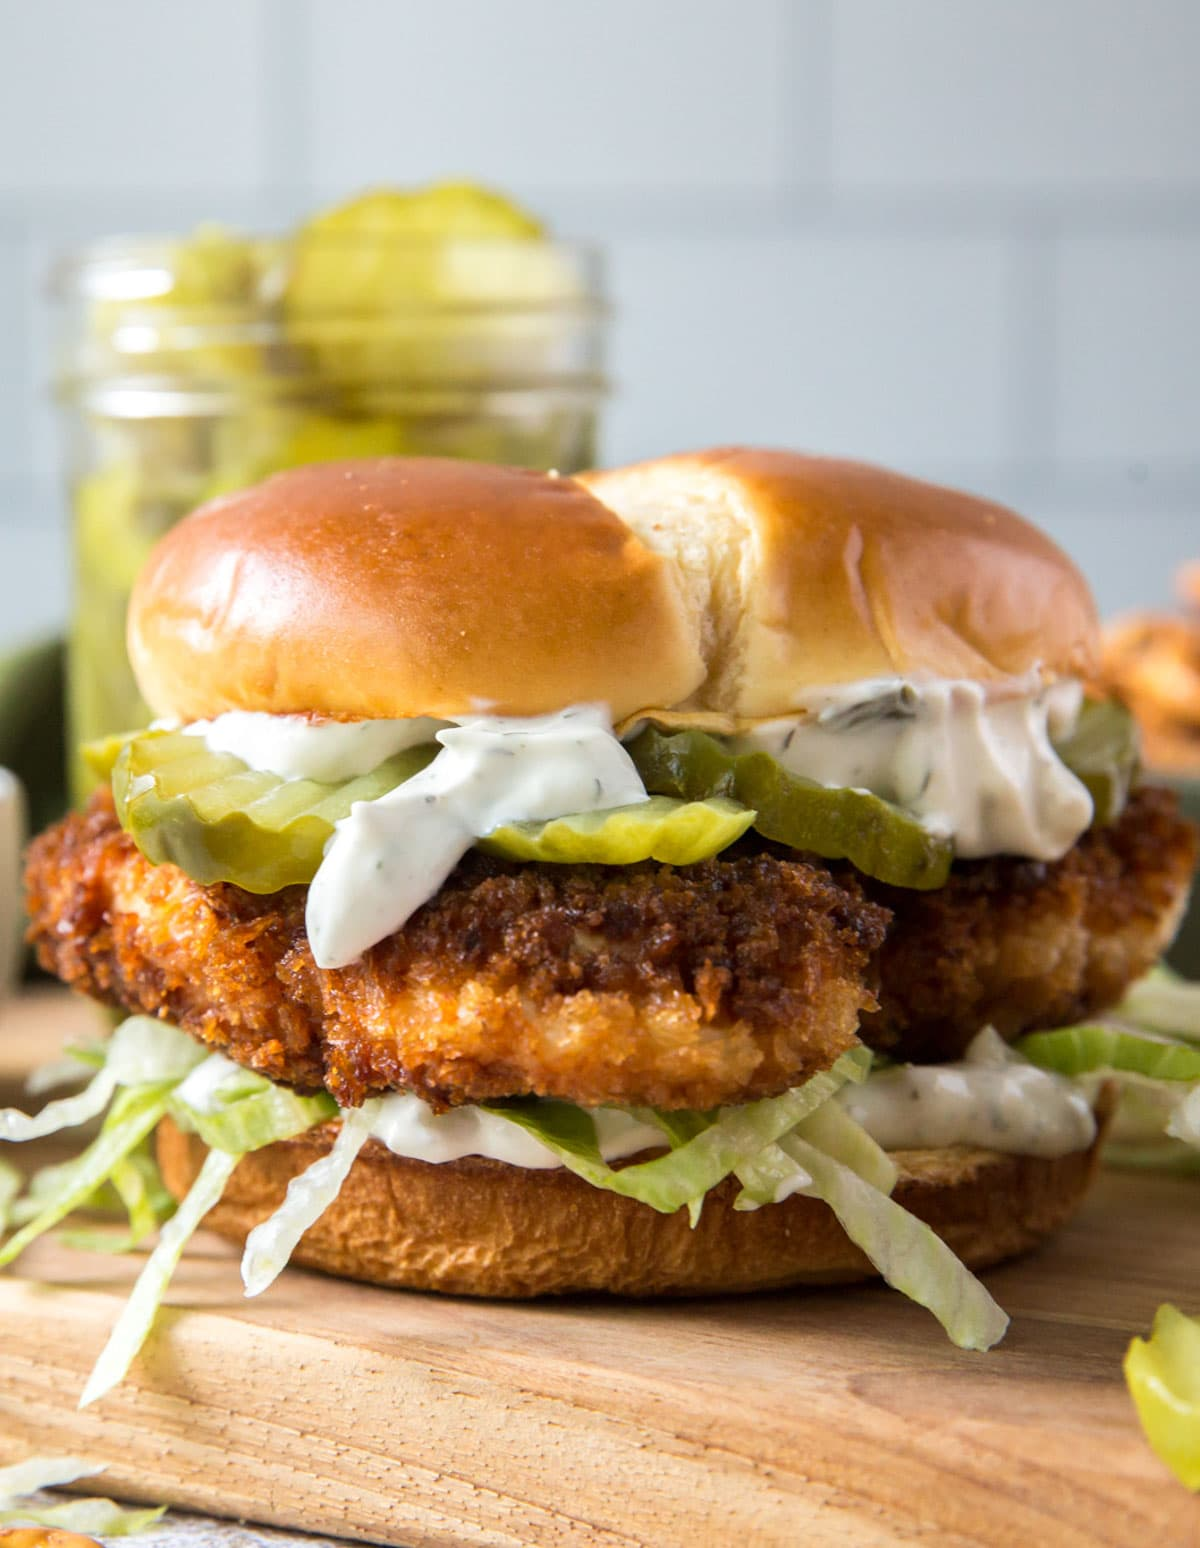 fried chicken sandwich with lettuce and pickles on a bin, wood cutting board, jar of pickles